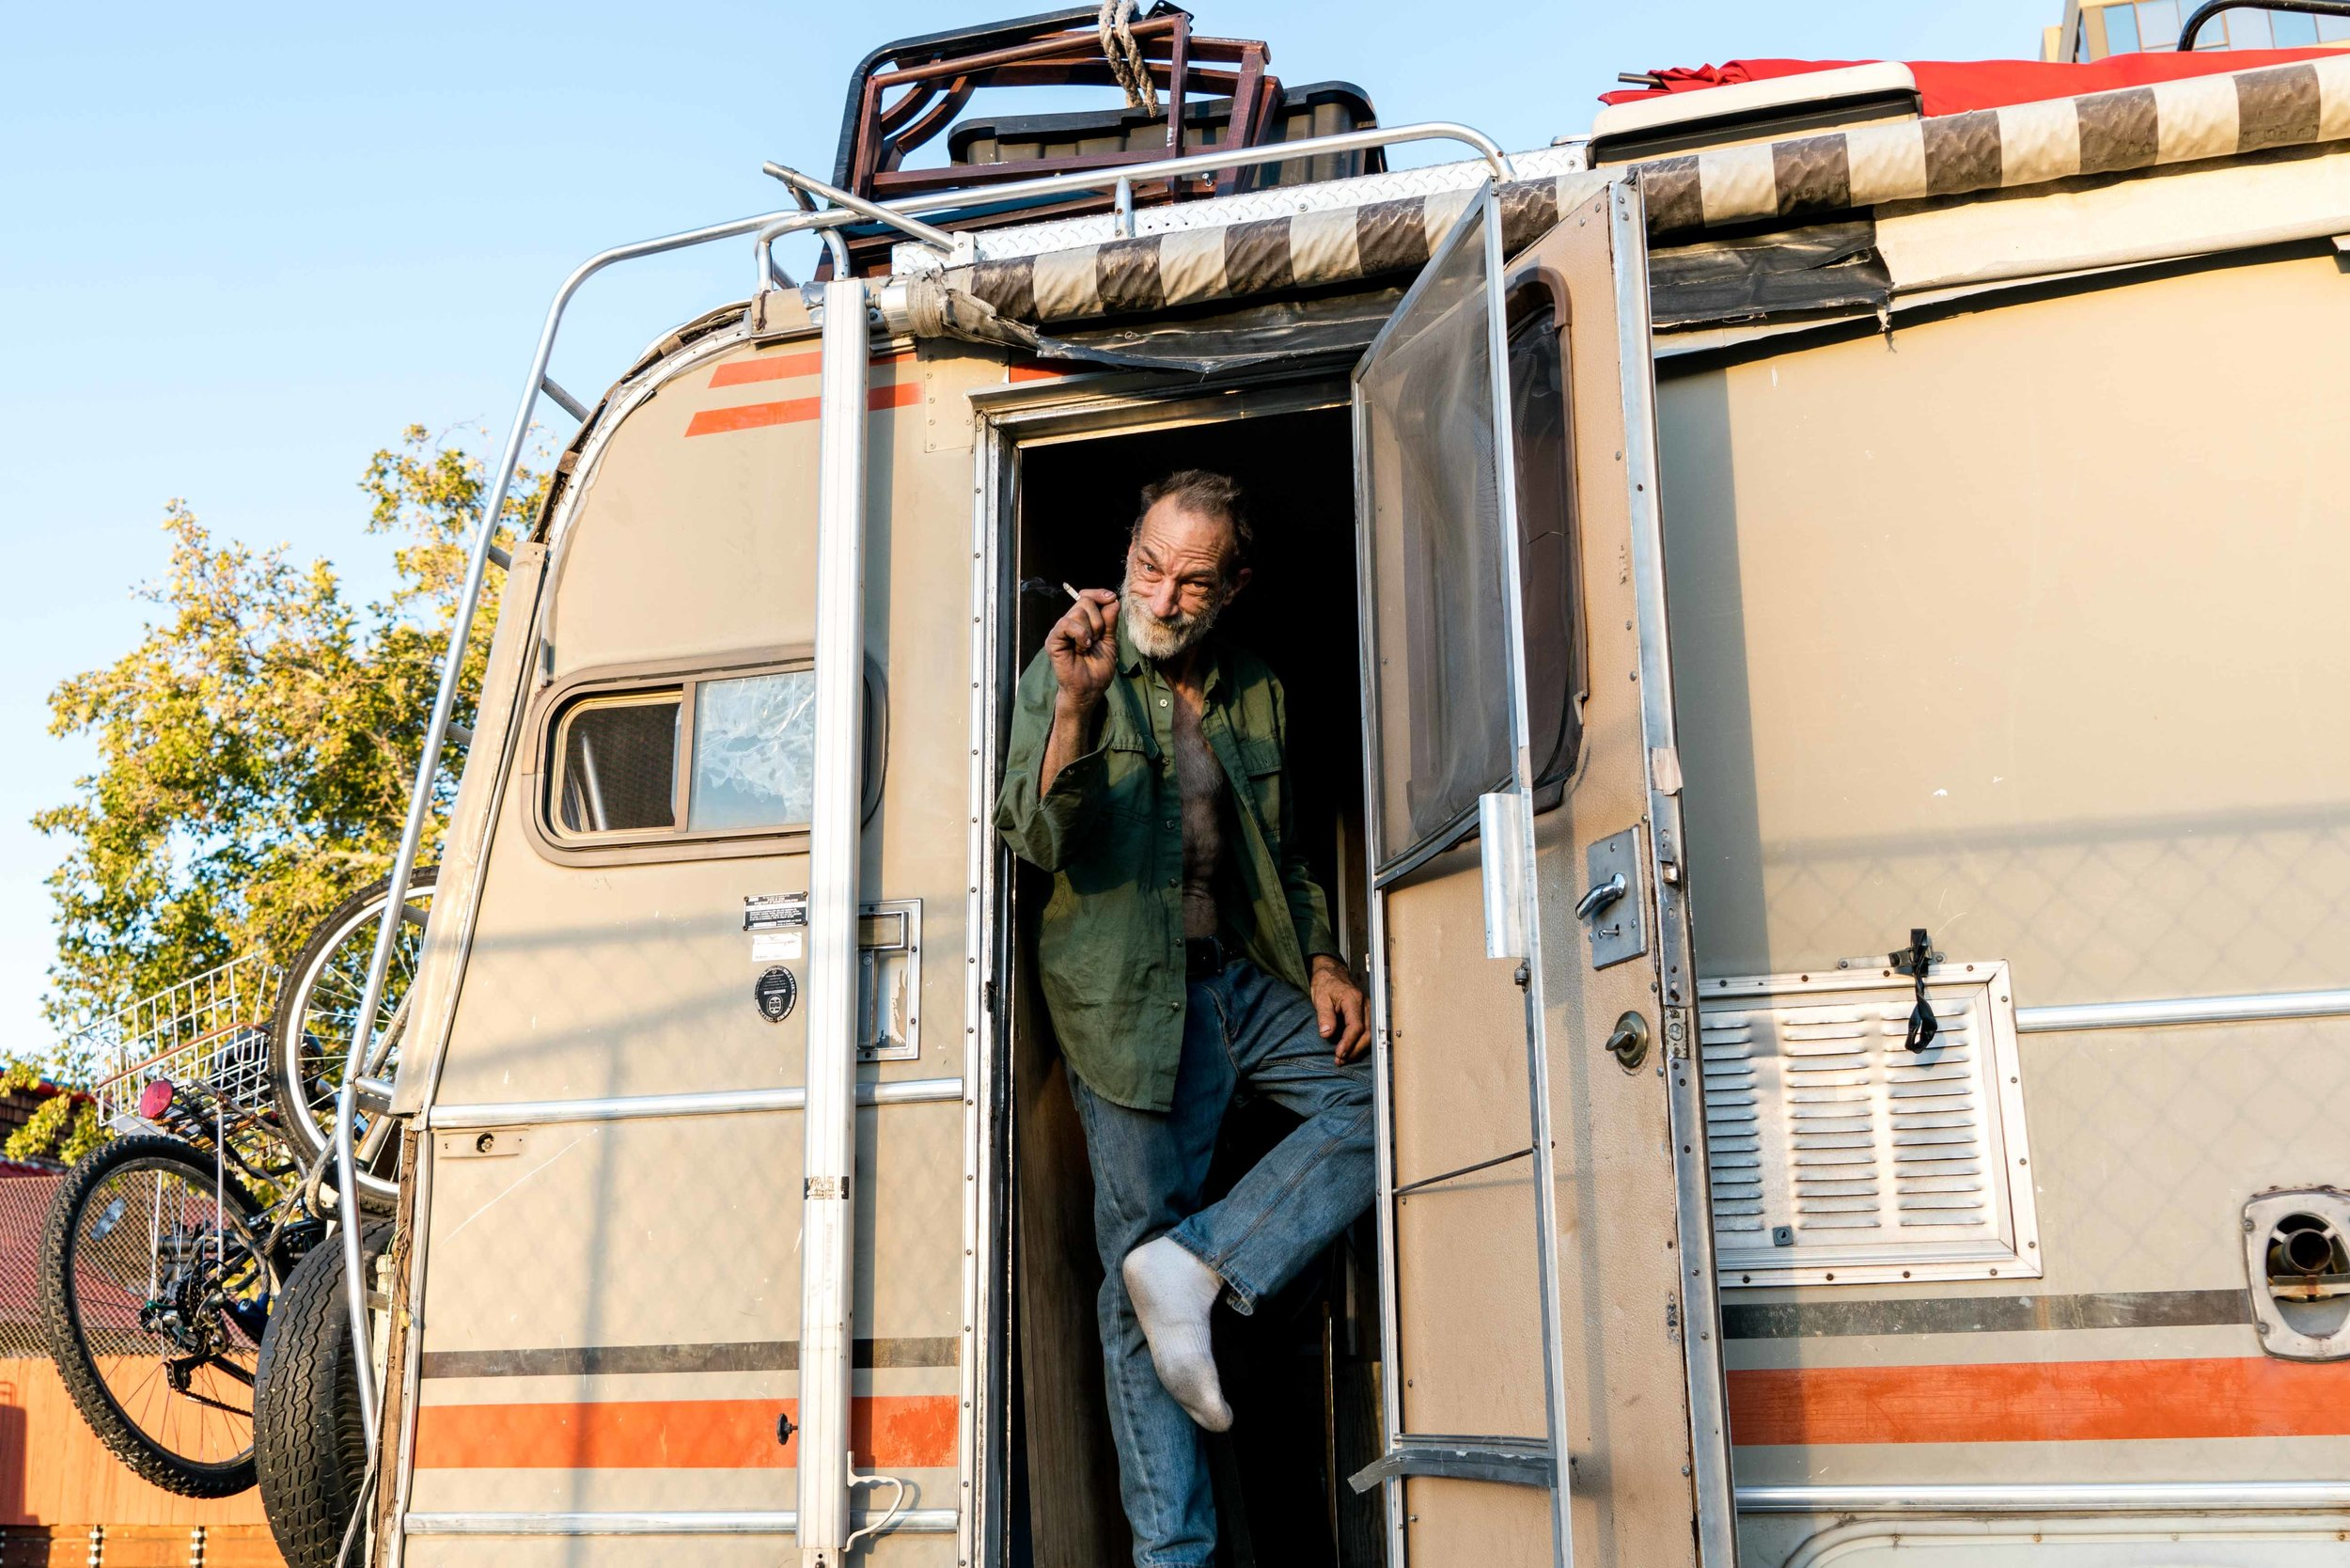 """""""I call her ugly,"""" B*. says as he motions to his 1980s home on wheels, which he got from a """"God-fearing-man"""" last December. B. is a street guitarist who recently left his job as a plumber at the Tesla factory. He says """"Ugly"""" is the best thing that ever happened to him because it allowed him to keep pursuing music in Reno."""